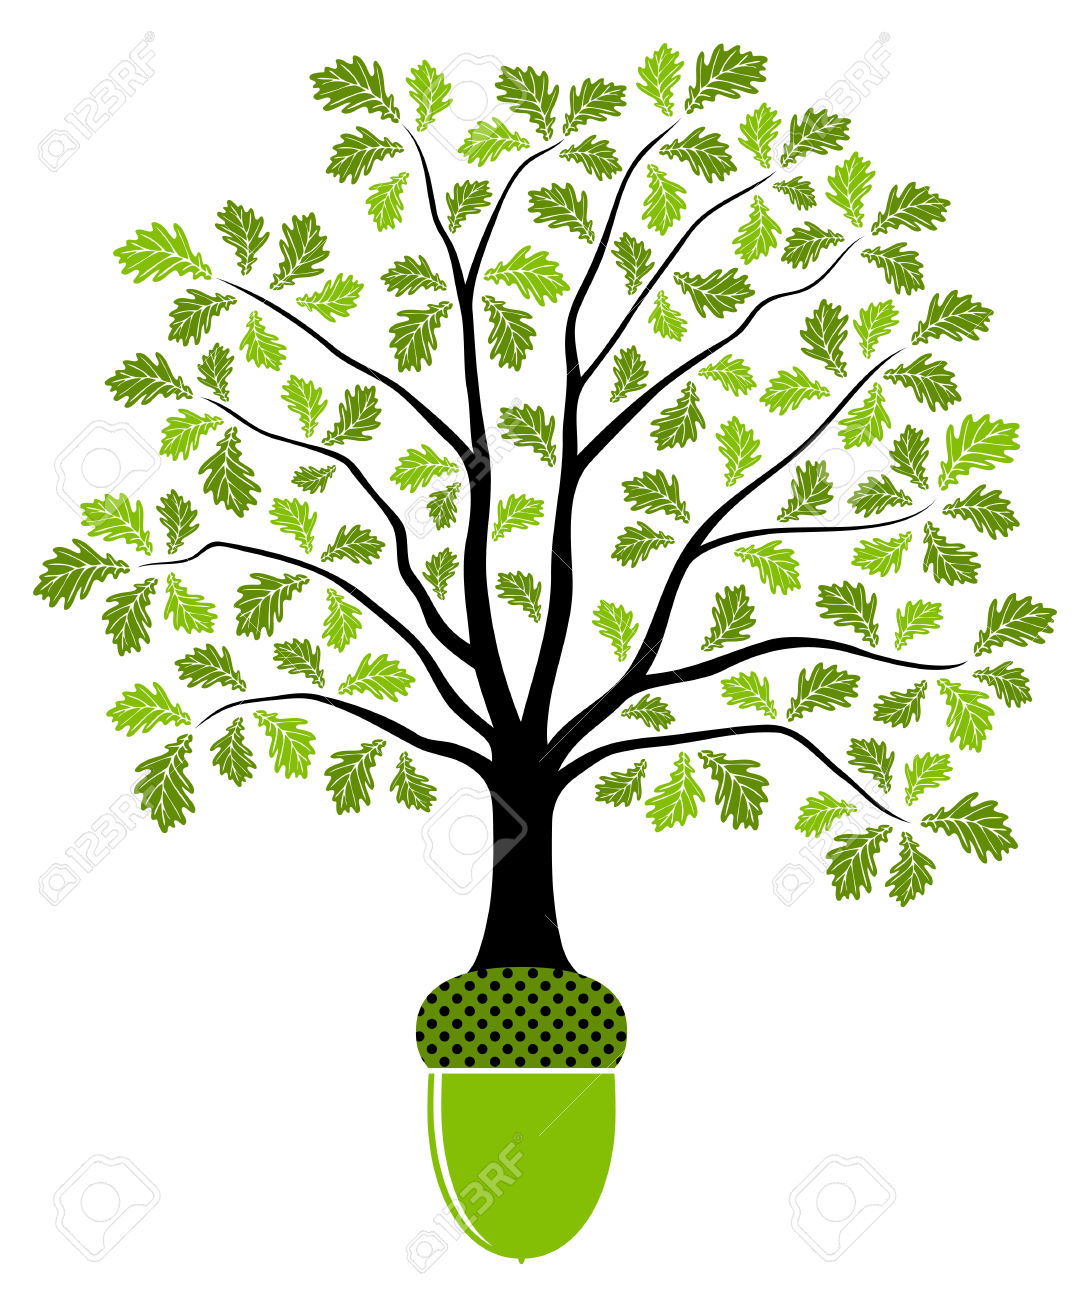 Oak Tree Vector Free Download